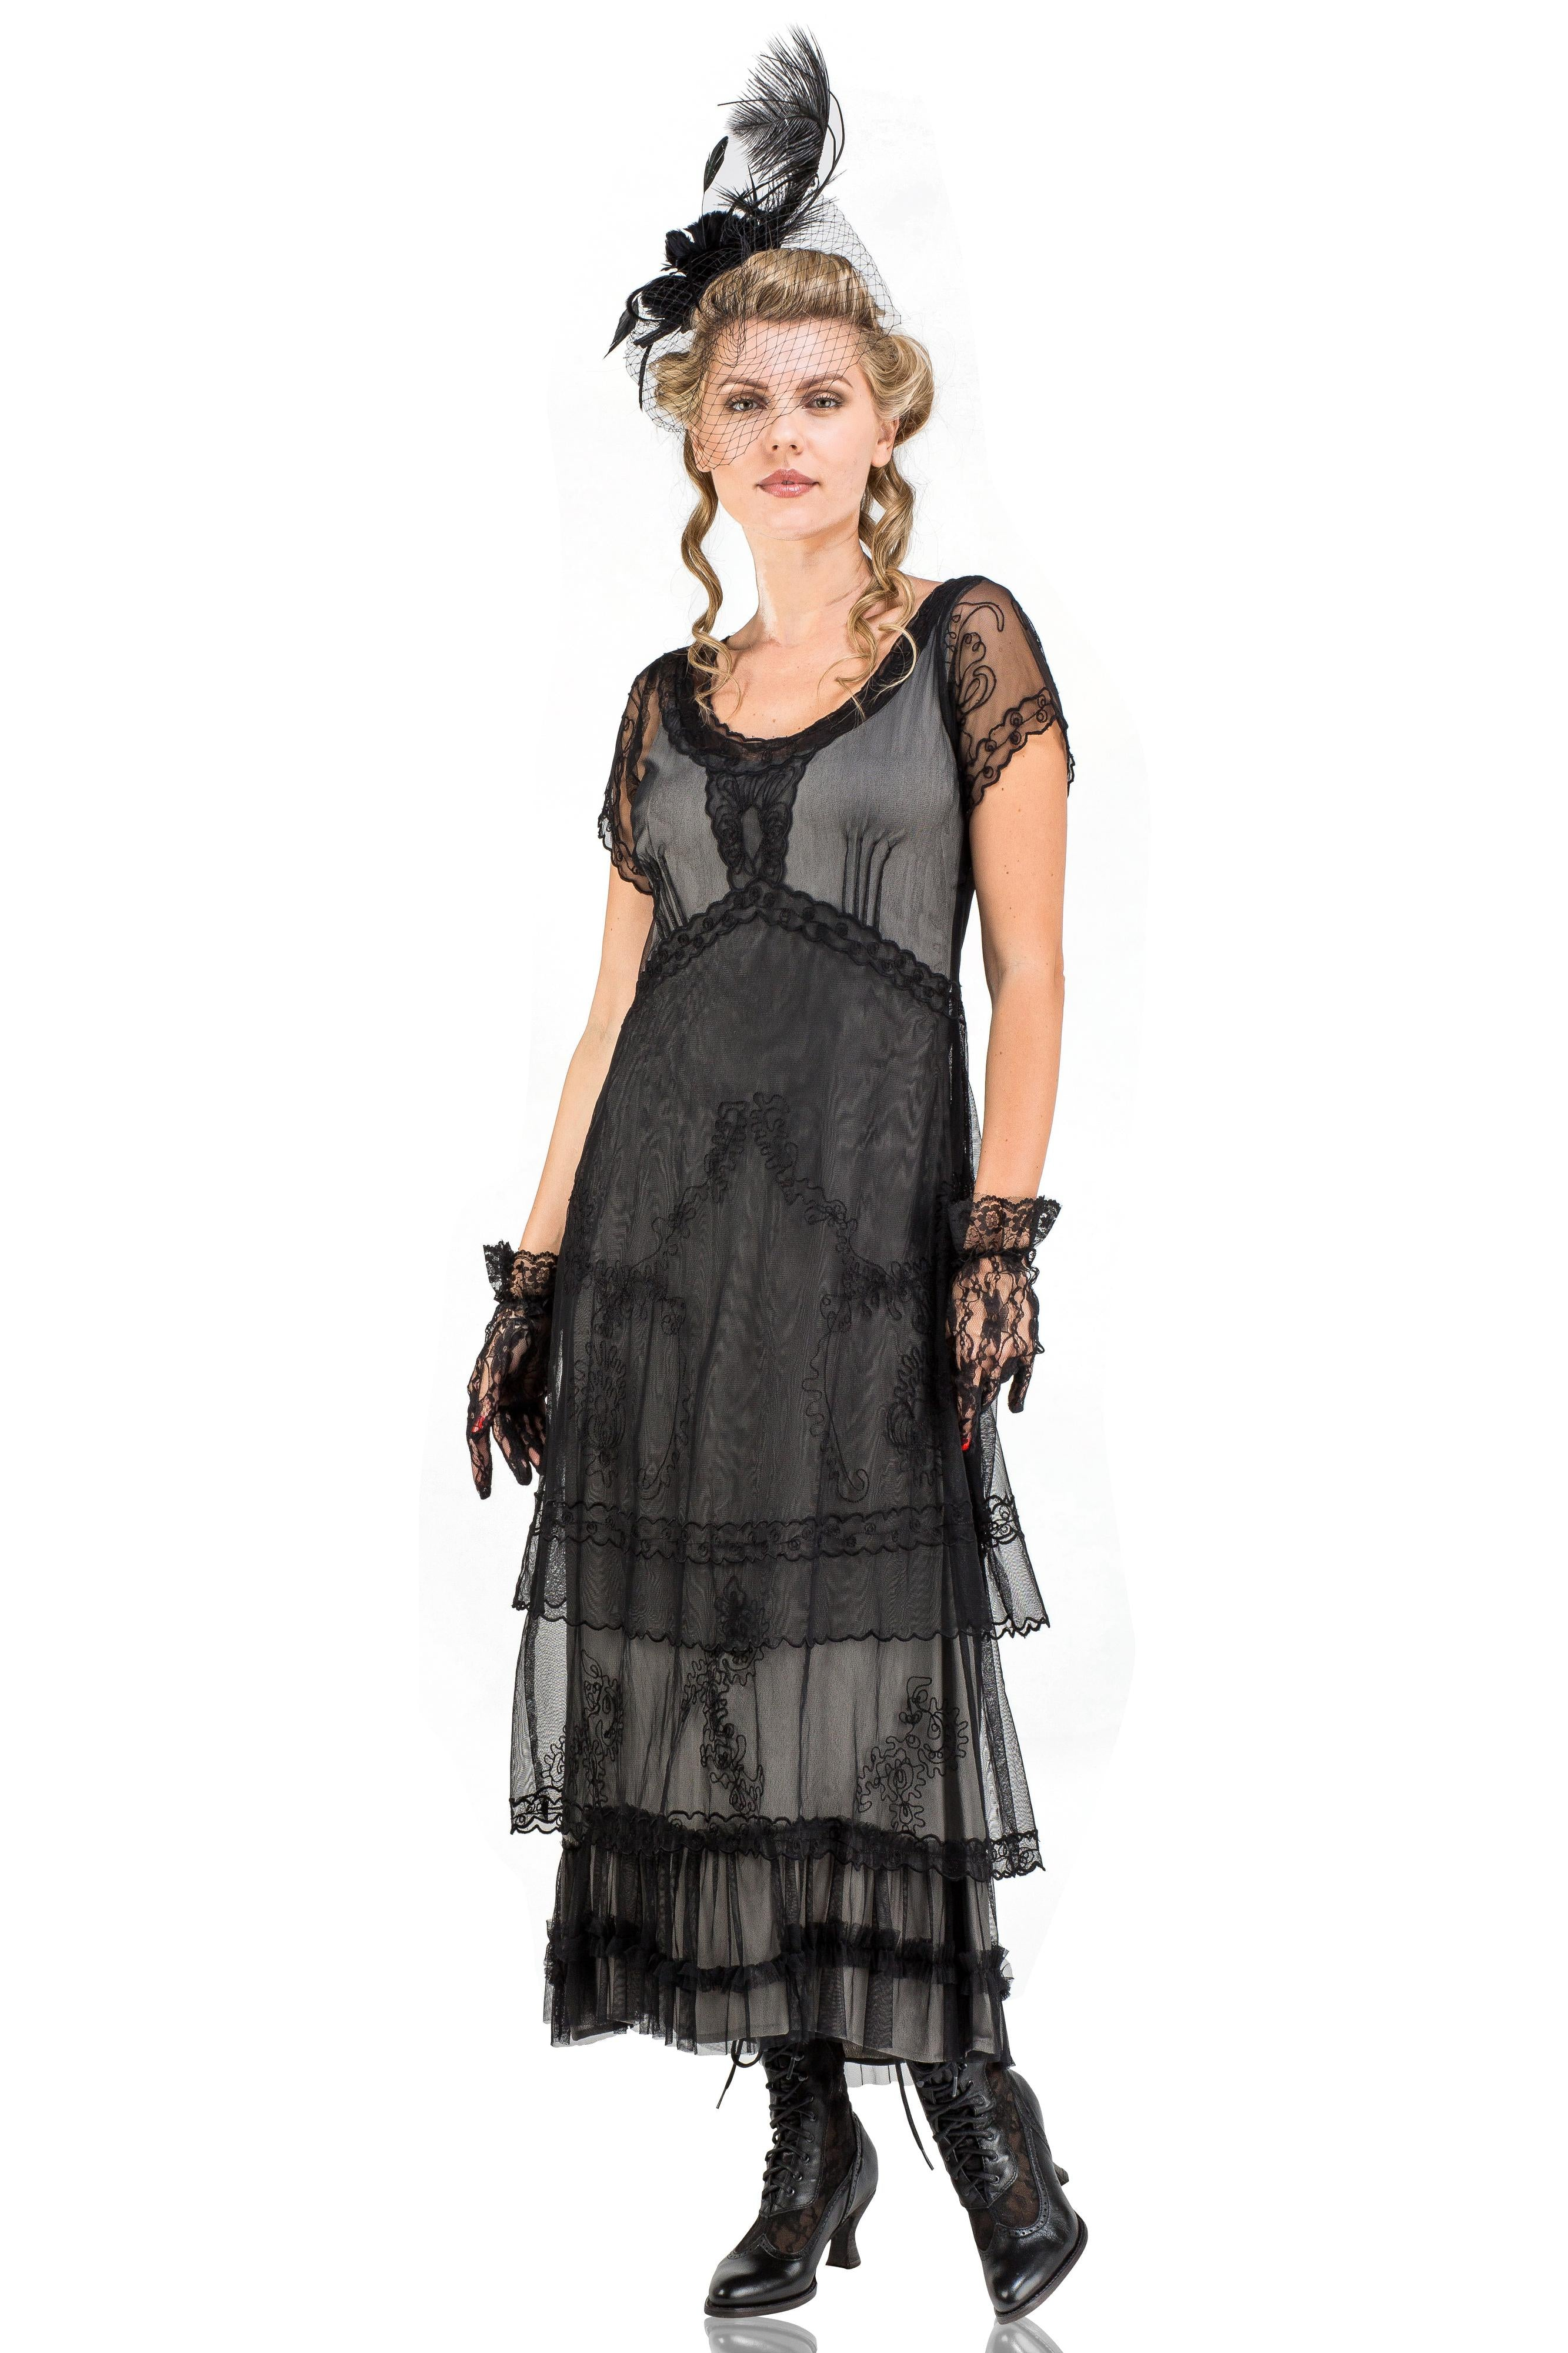 Steampunk Dresses | Women & Girl Costumes Arrianna Vintage Style Party Dress in Black by Nataya $265.00 AT vintagedancer.com